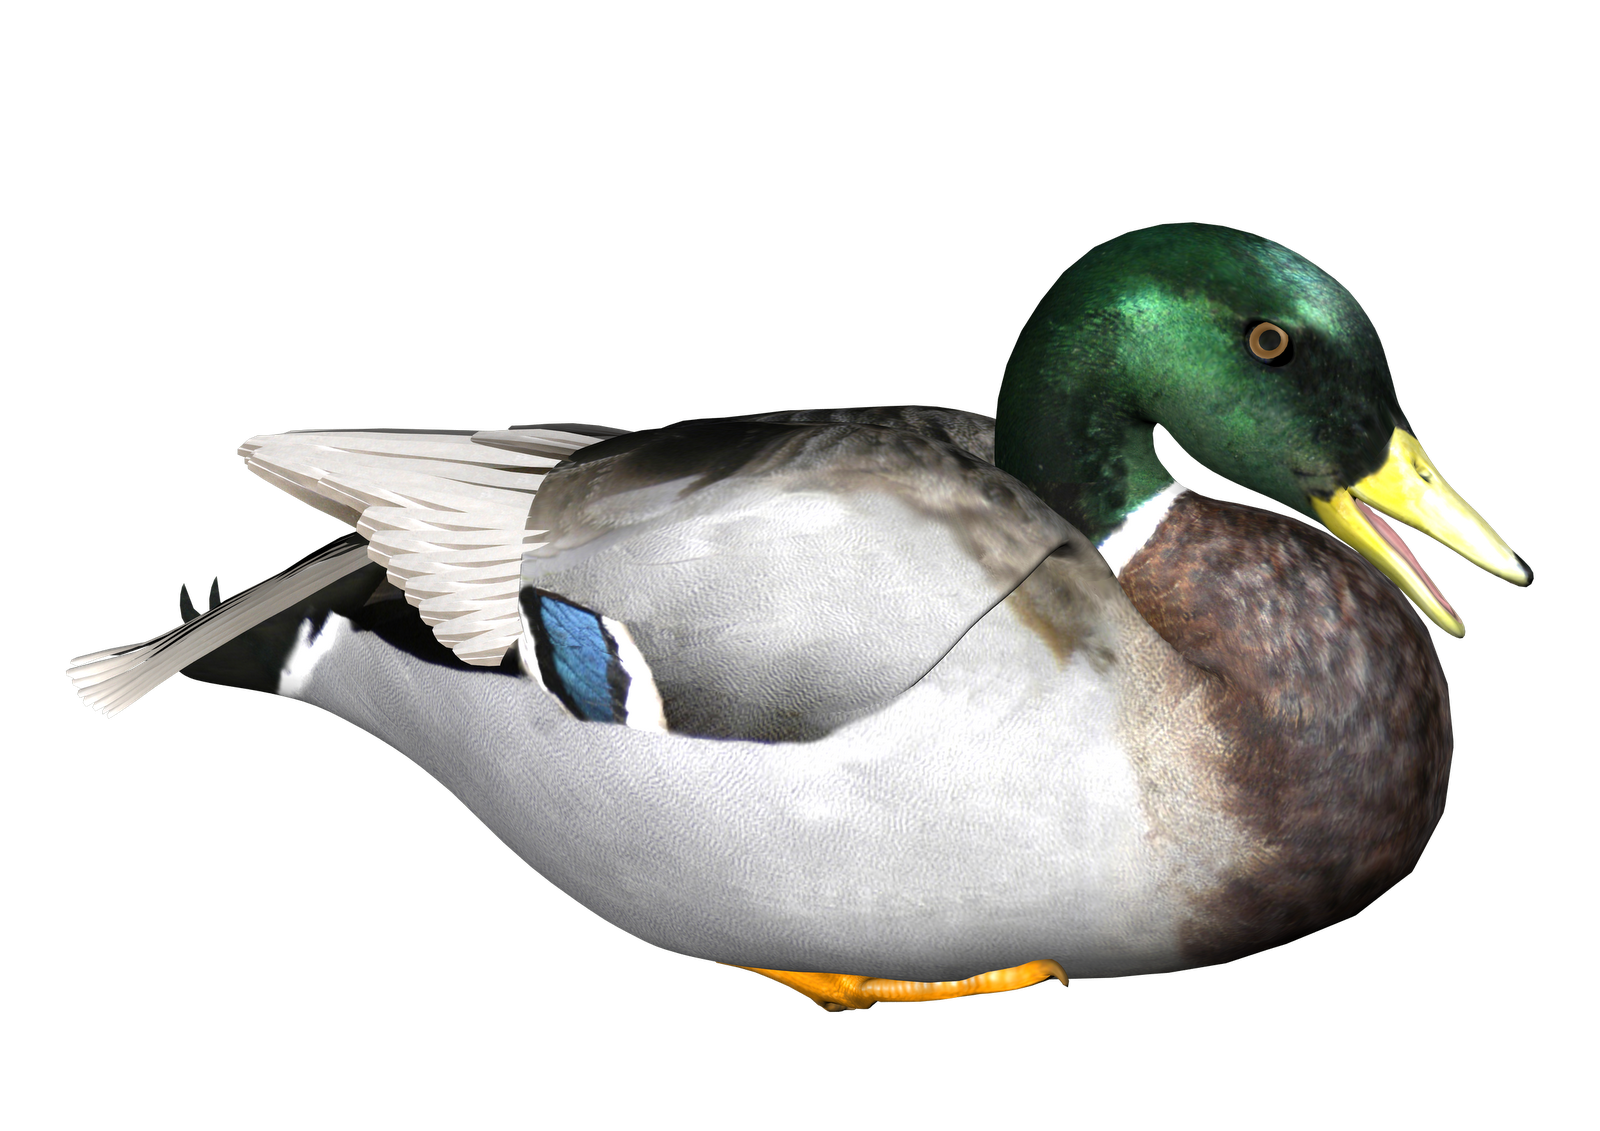 Duck Png - Duck Transparent Background